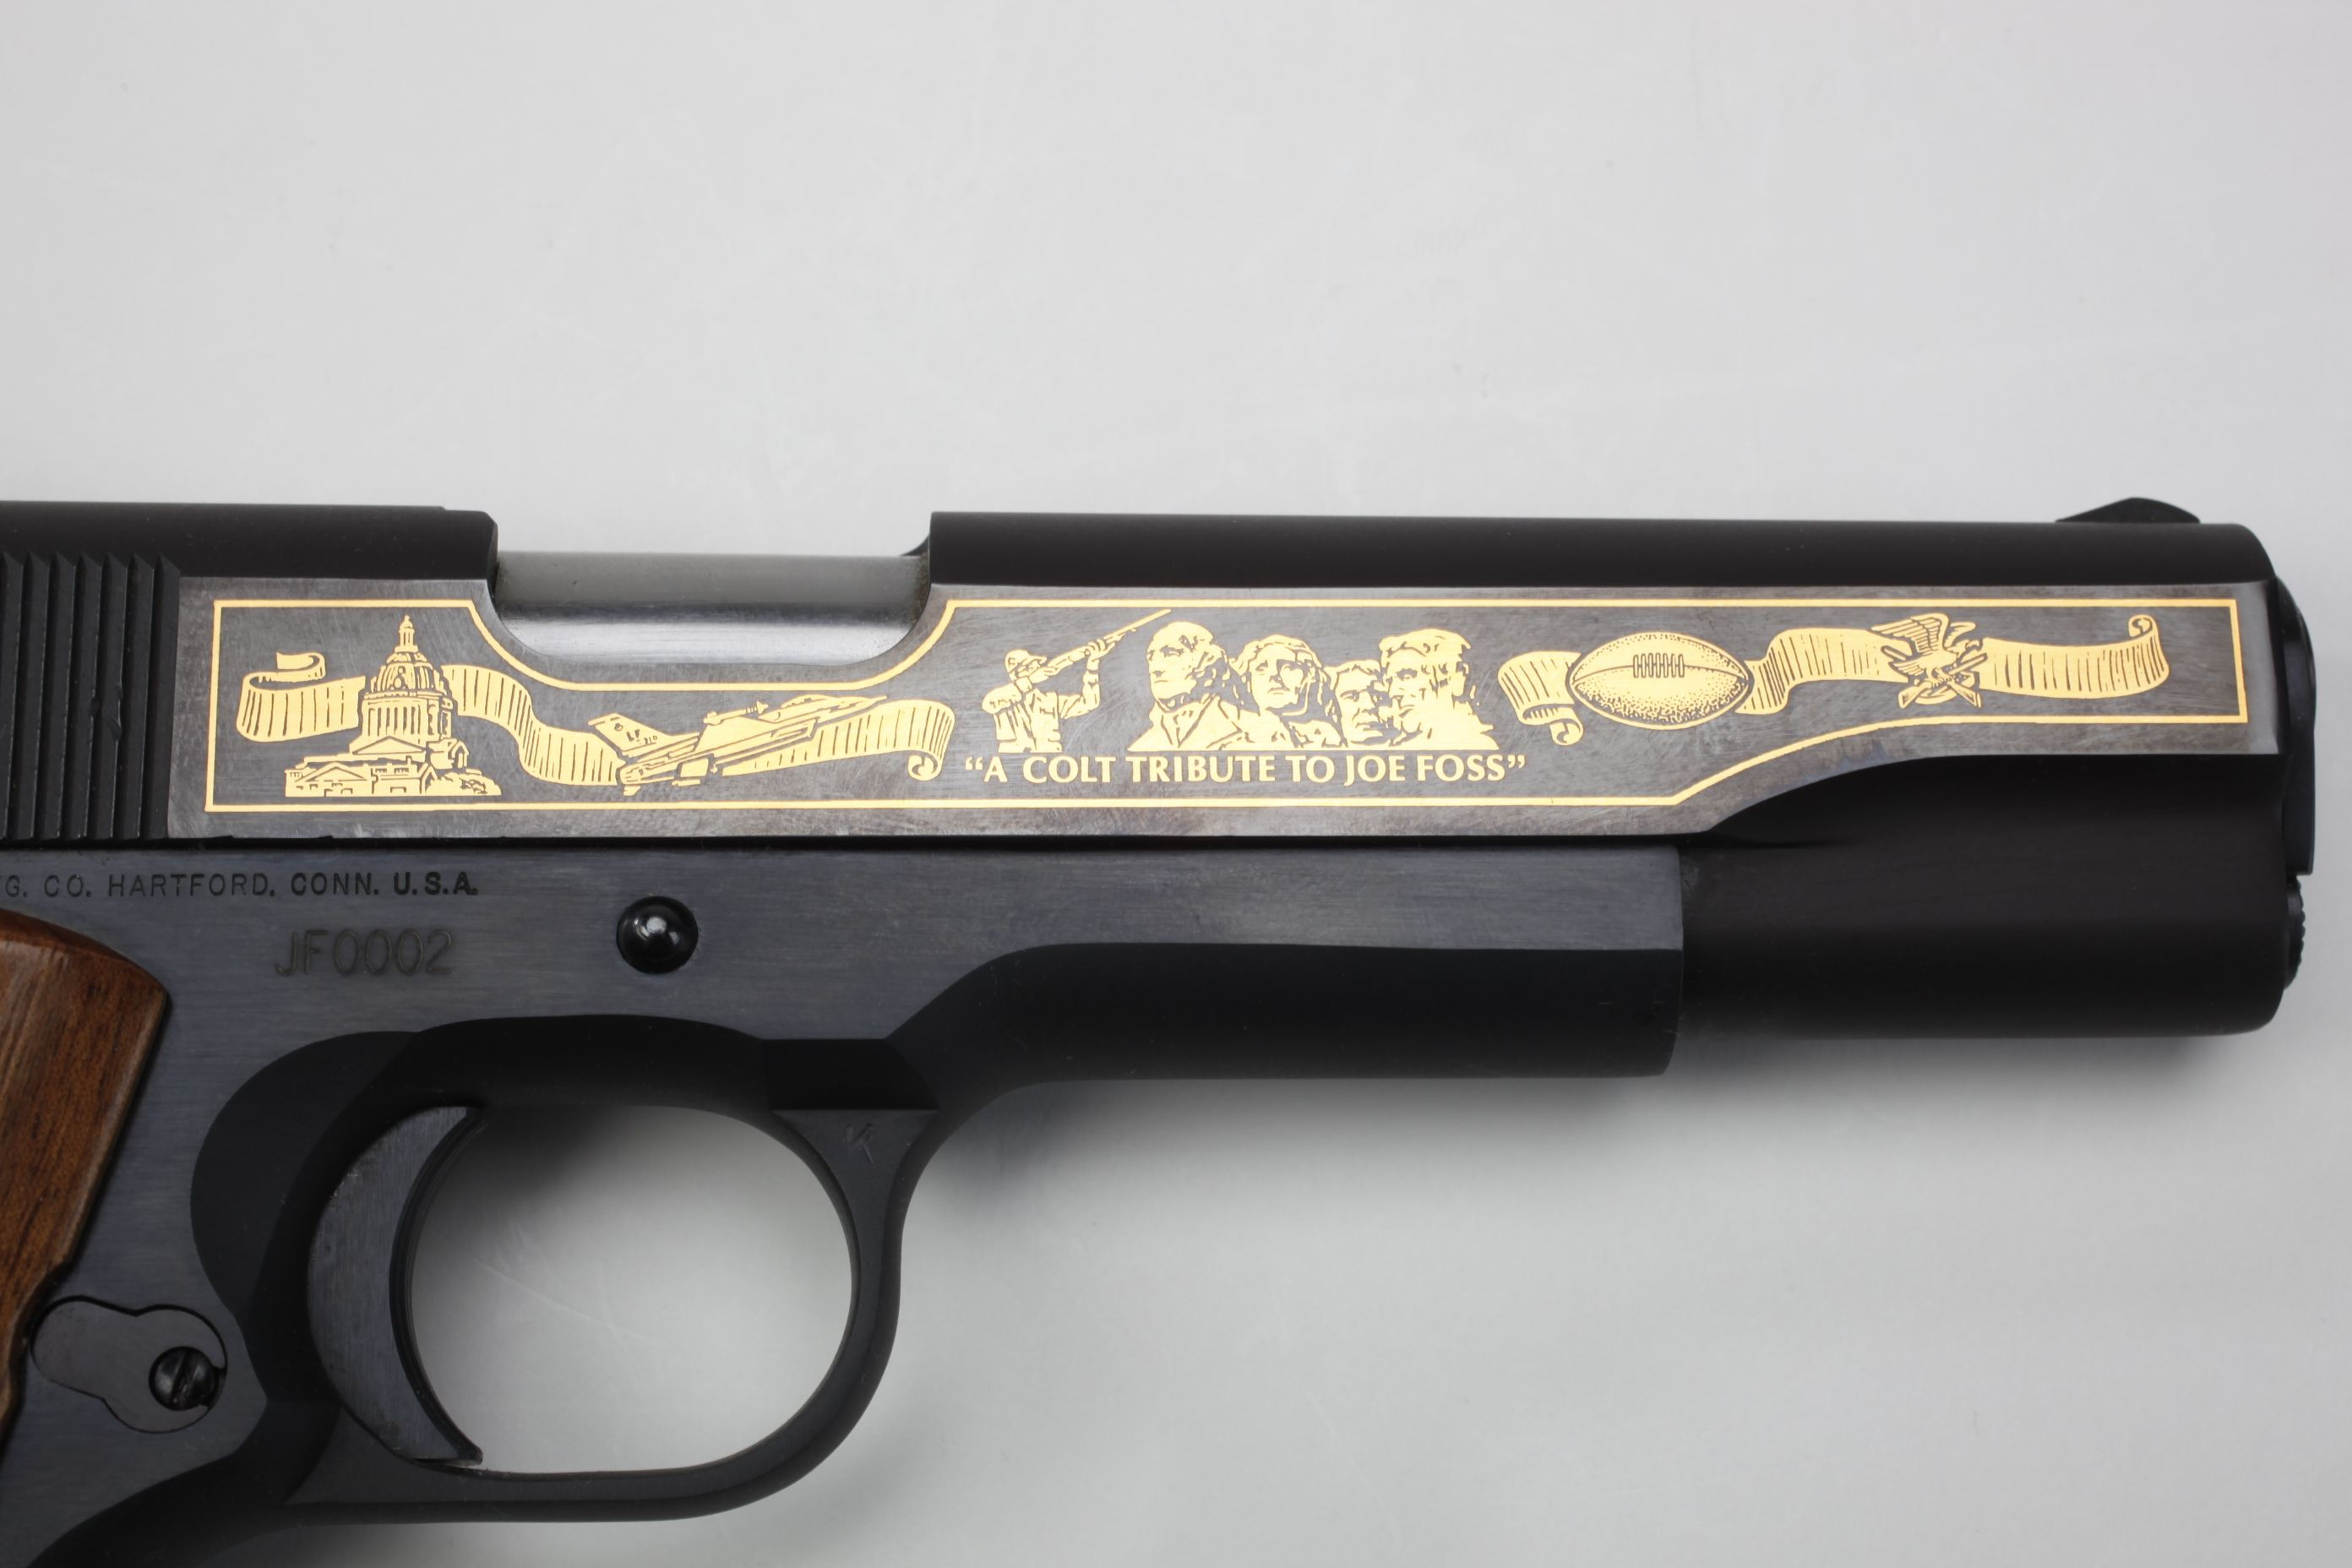 General Joseph Foss' Colt Model 1911A1 Semi-Automatic General Officer's Pistol